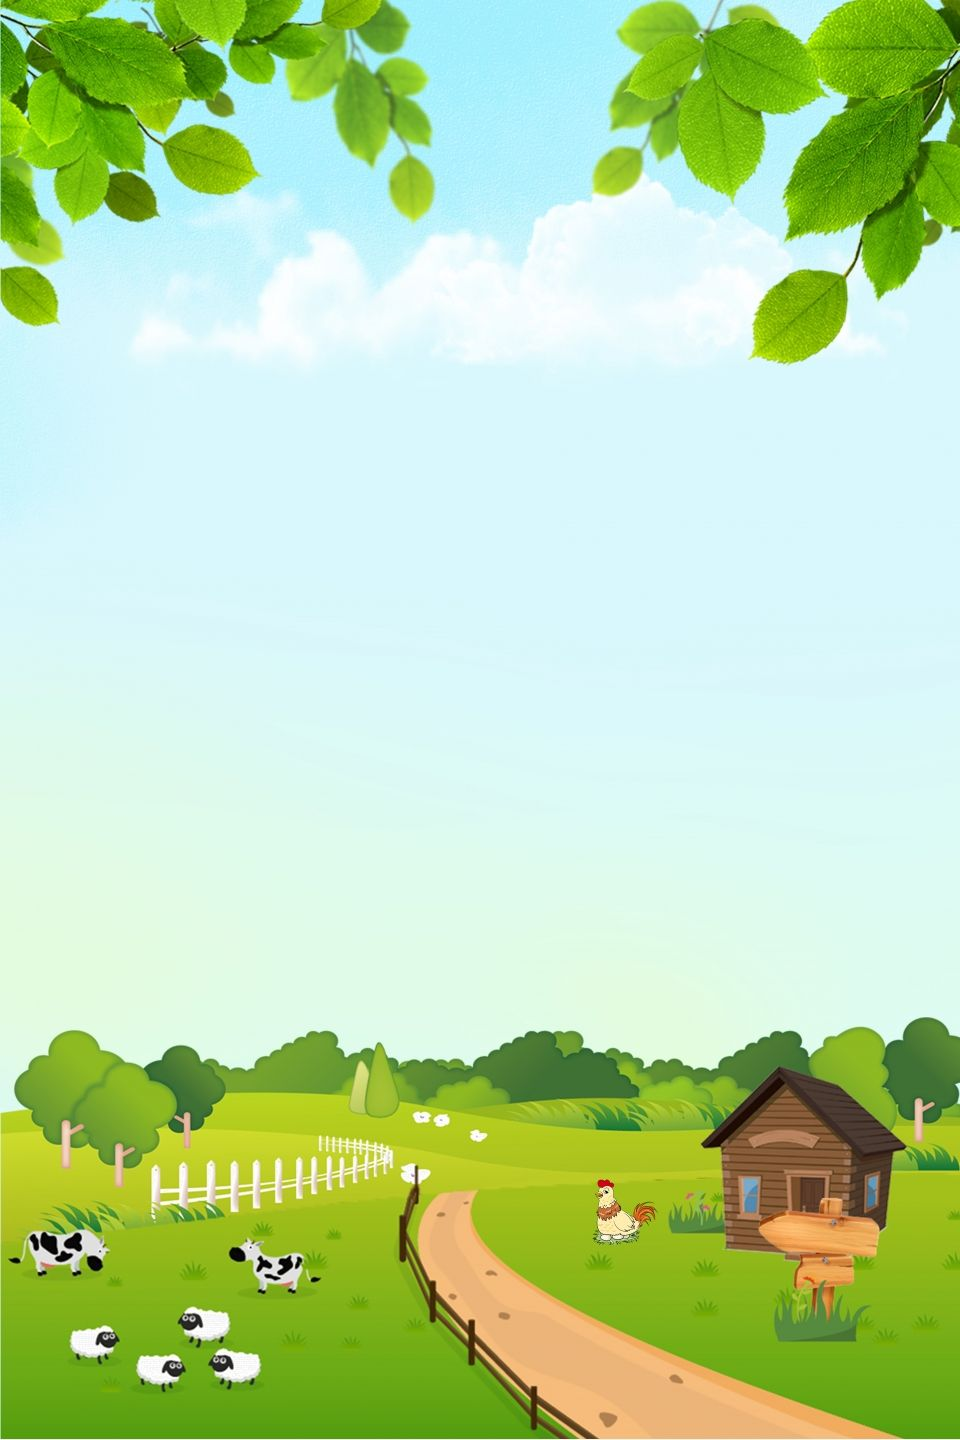 Natural Green Ecological Farm Background Images Background Clipart Background Images Wallpapers